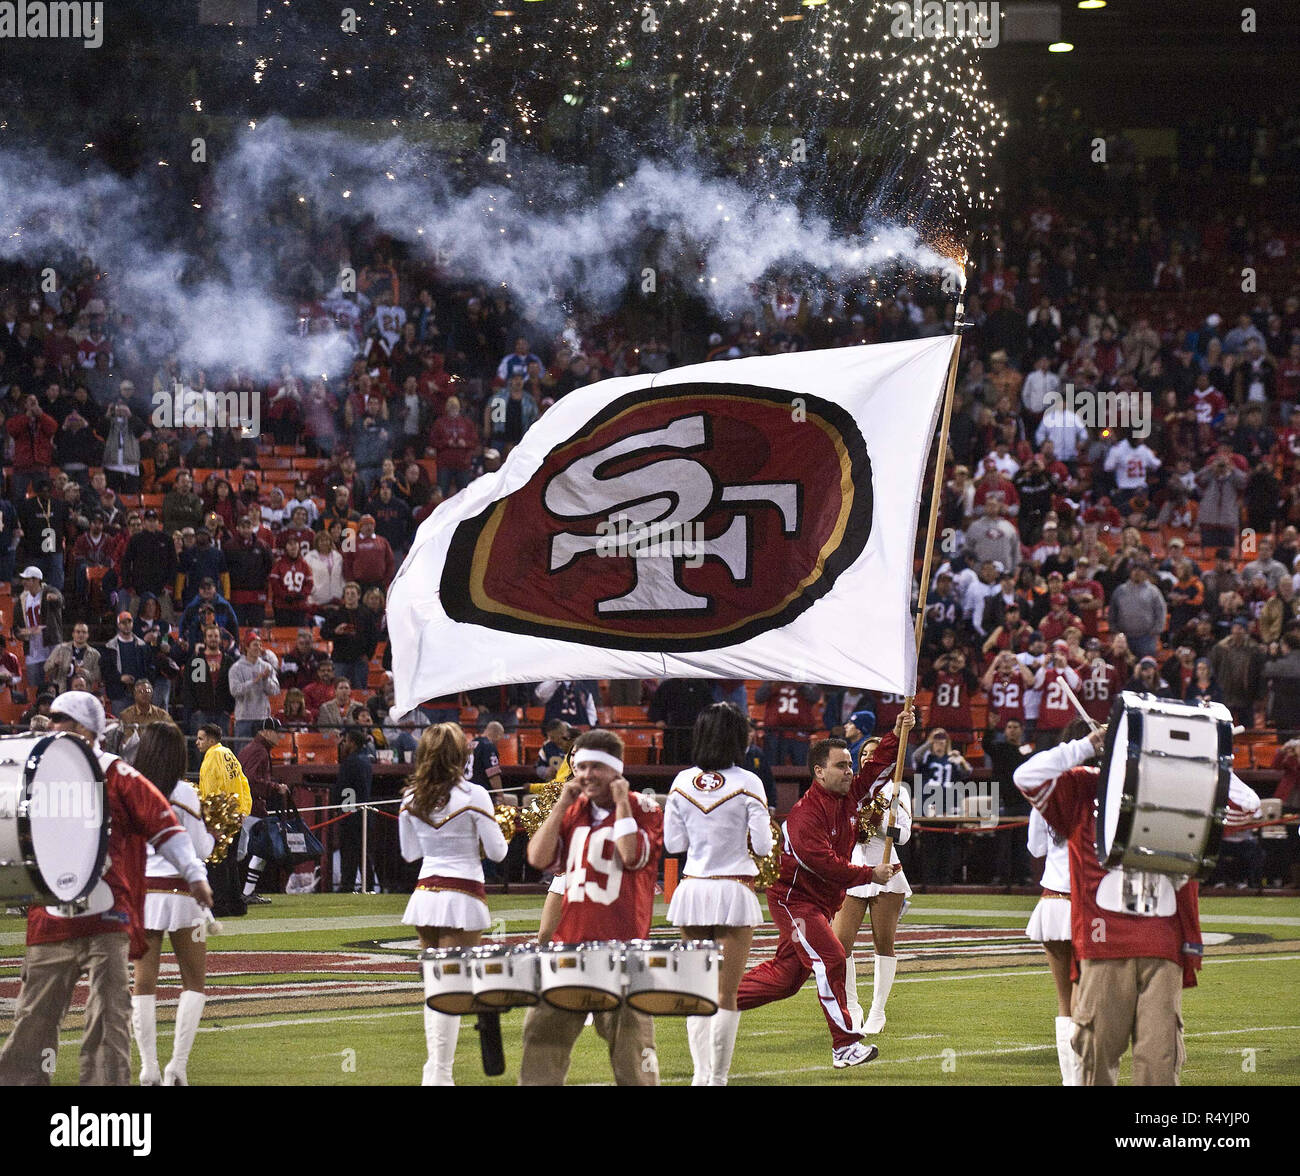 San Francisco, California, USA. 12th Nov, 2009. Opening ceremonies opened with a bang on Thursday, November 12, 2009 at Candlestick Park, San Francisco, California. The 49ers defeated the Bears 10-6. Credit: Al Golub/ZUMA Wire/Alamy Live News - Stock Image